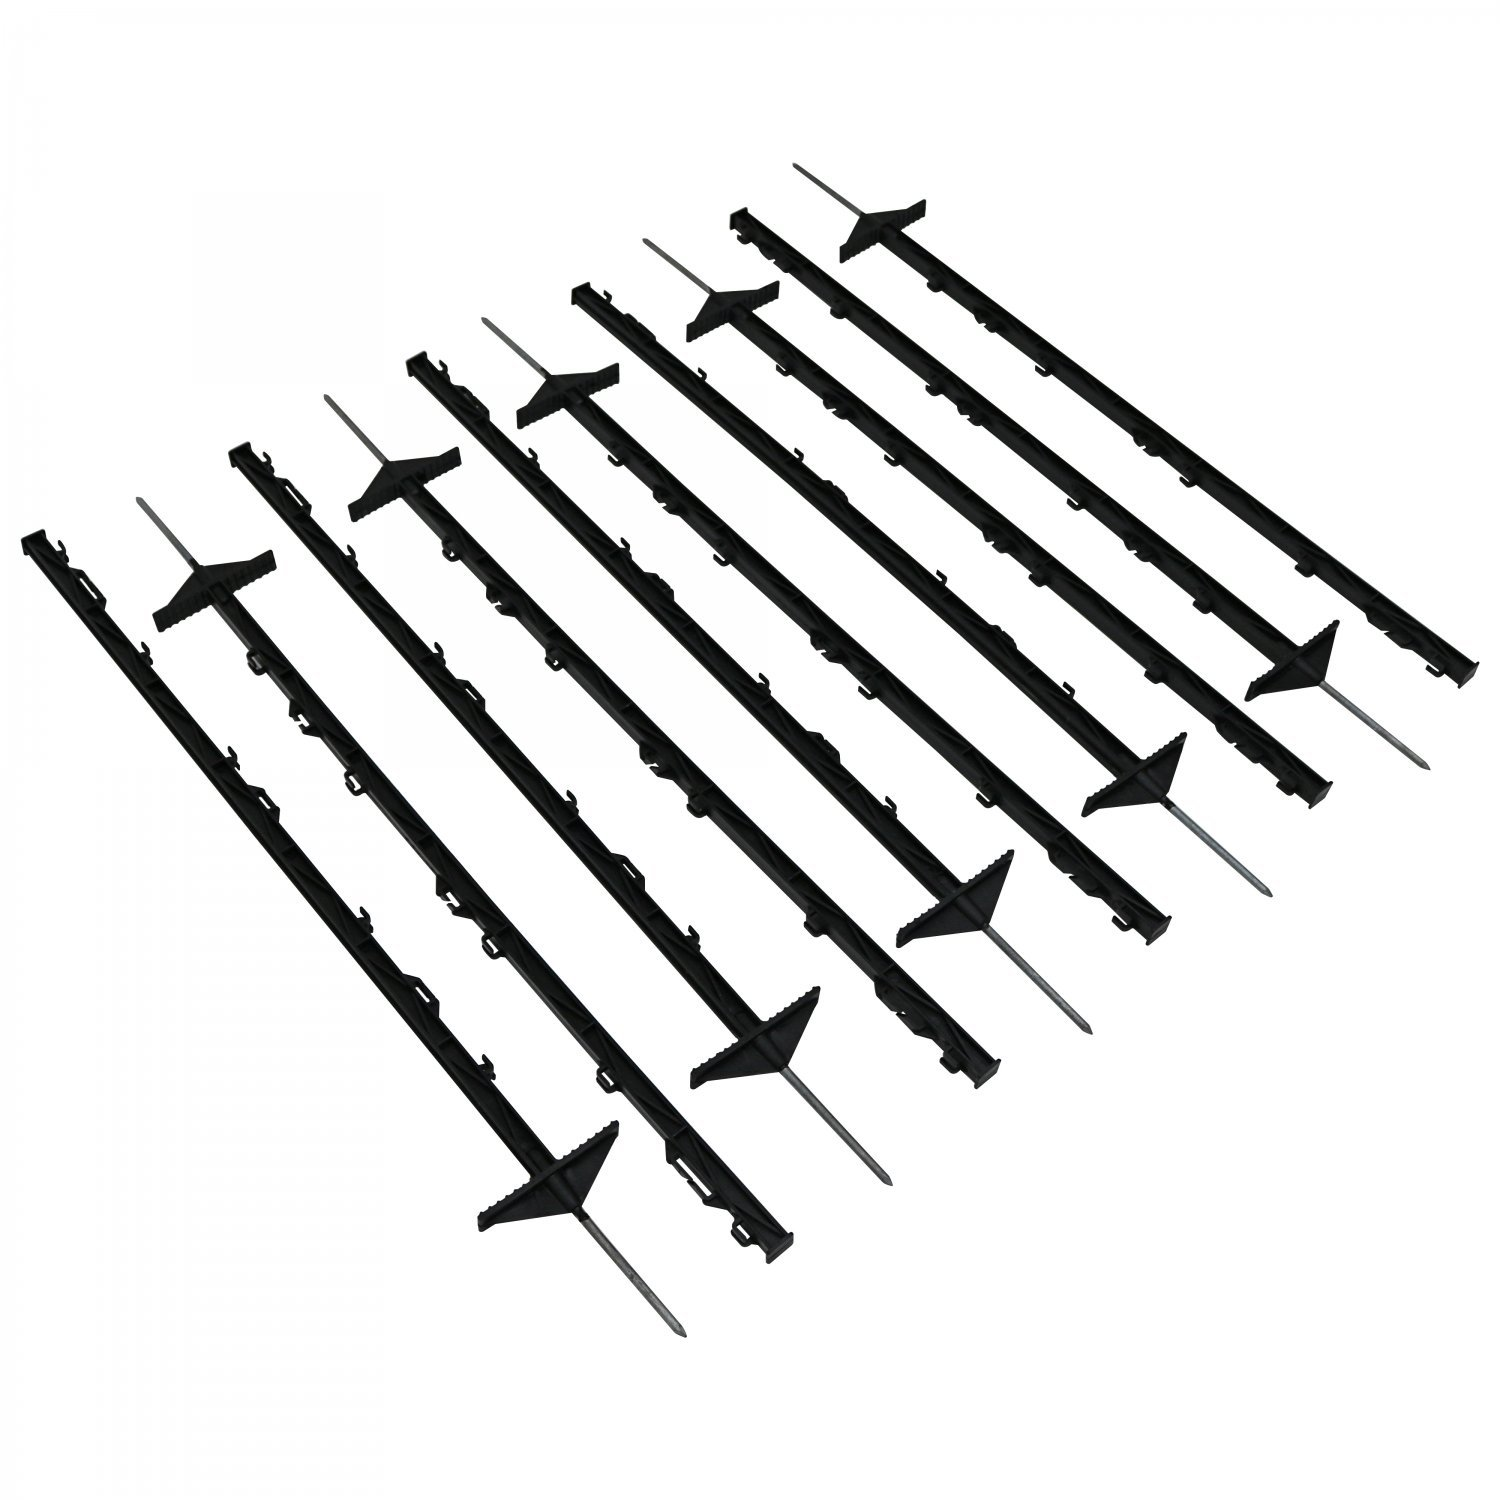 1m black plastic electric fencing pins posts stakes pack